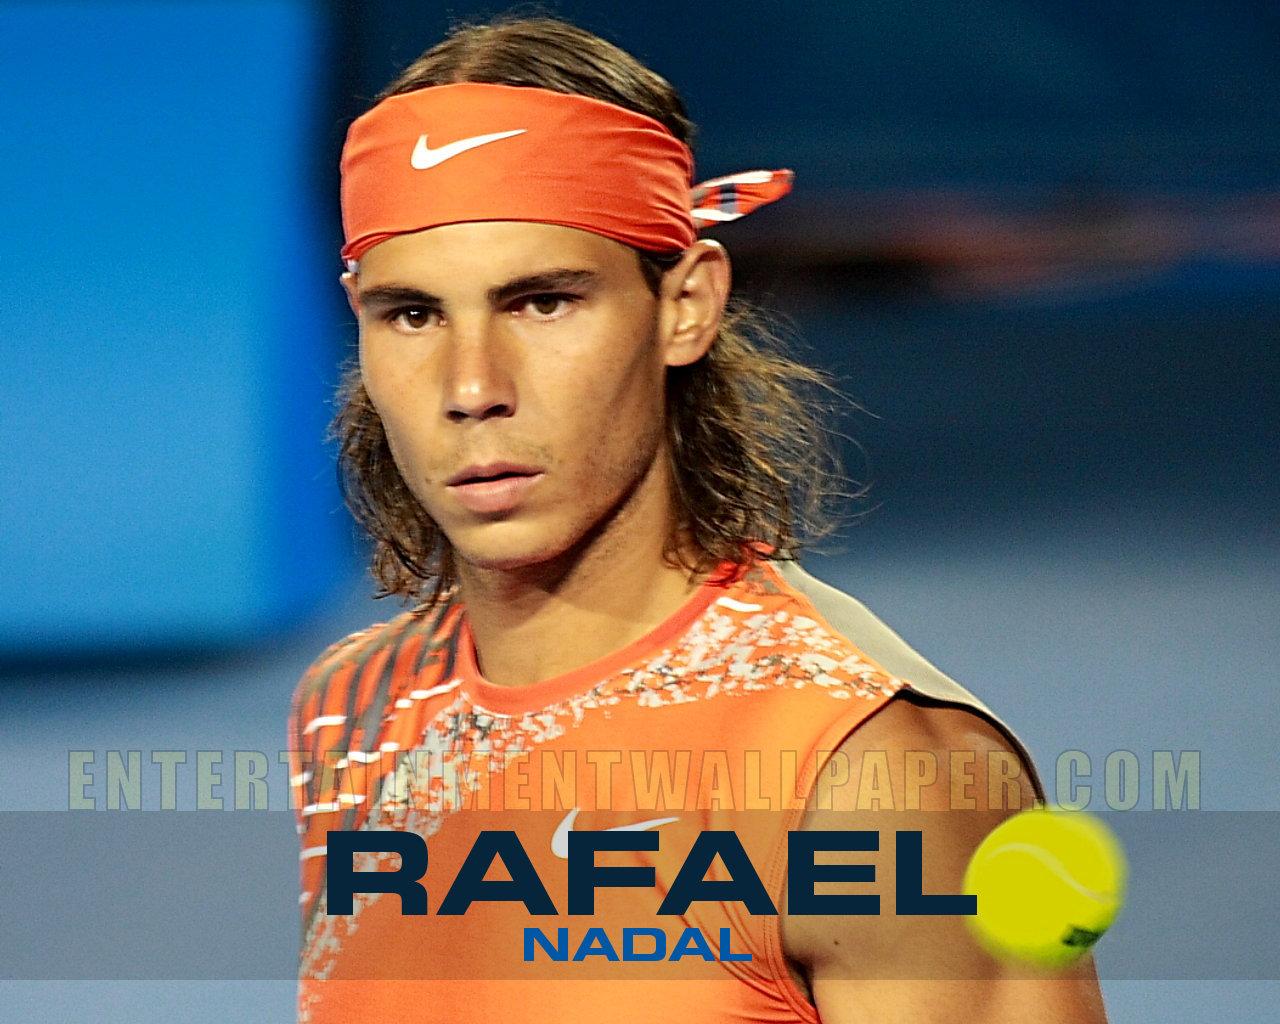 Rafael Nadal Wallpaper - Original size, download now.